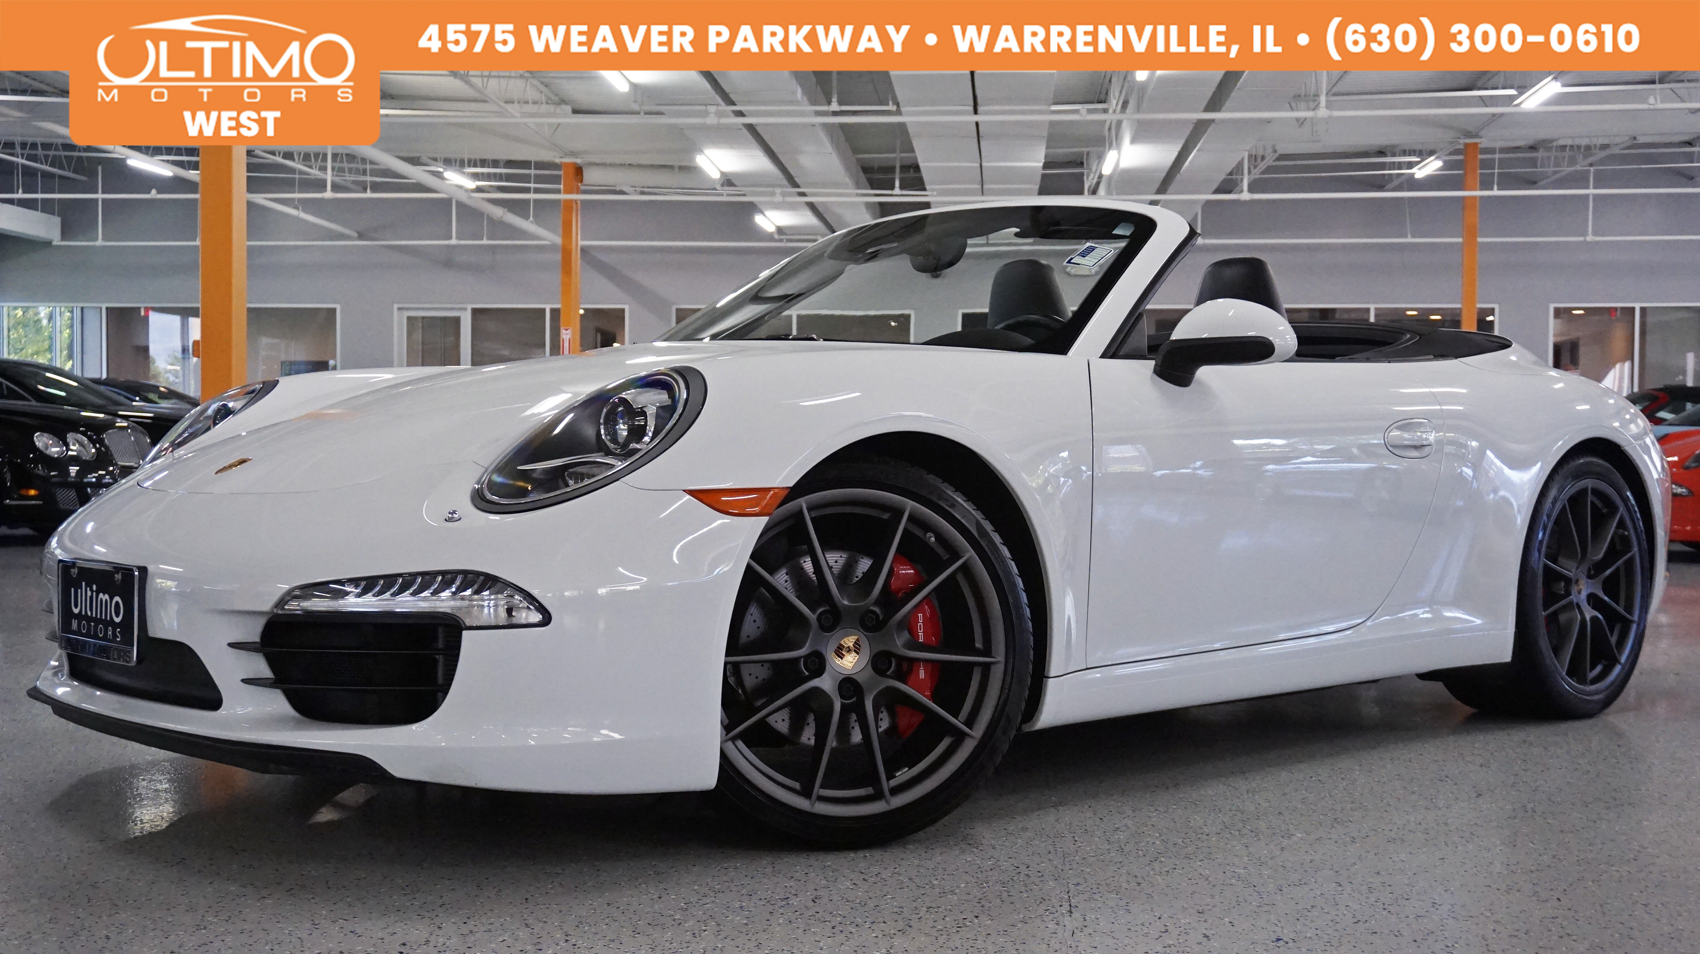 Pre-Owned 2014 Porsche 911 Carrera S, 7-speed Manual, Msrp $117,805